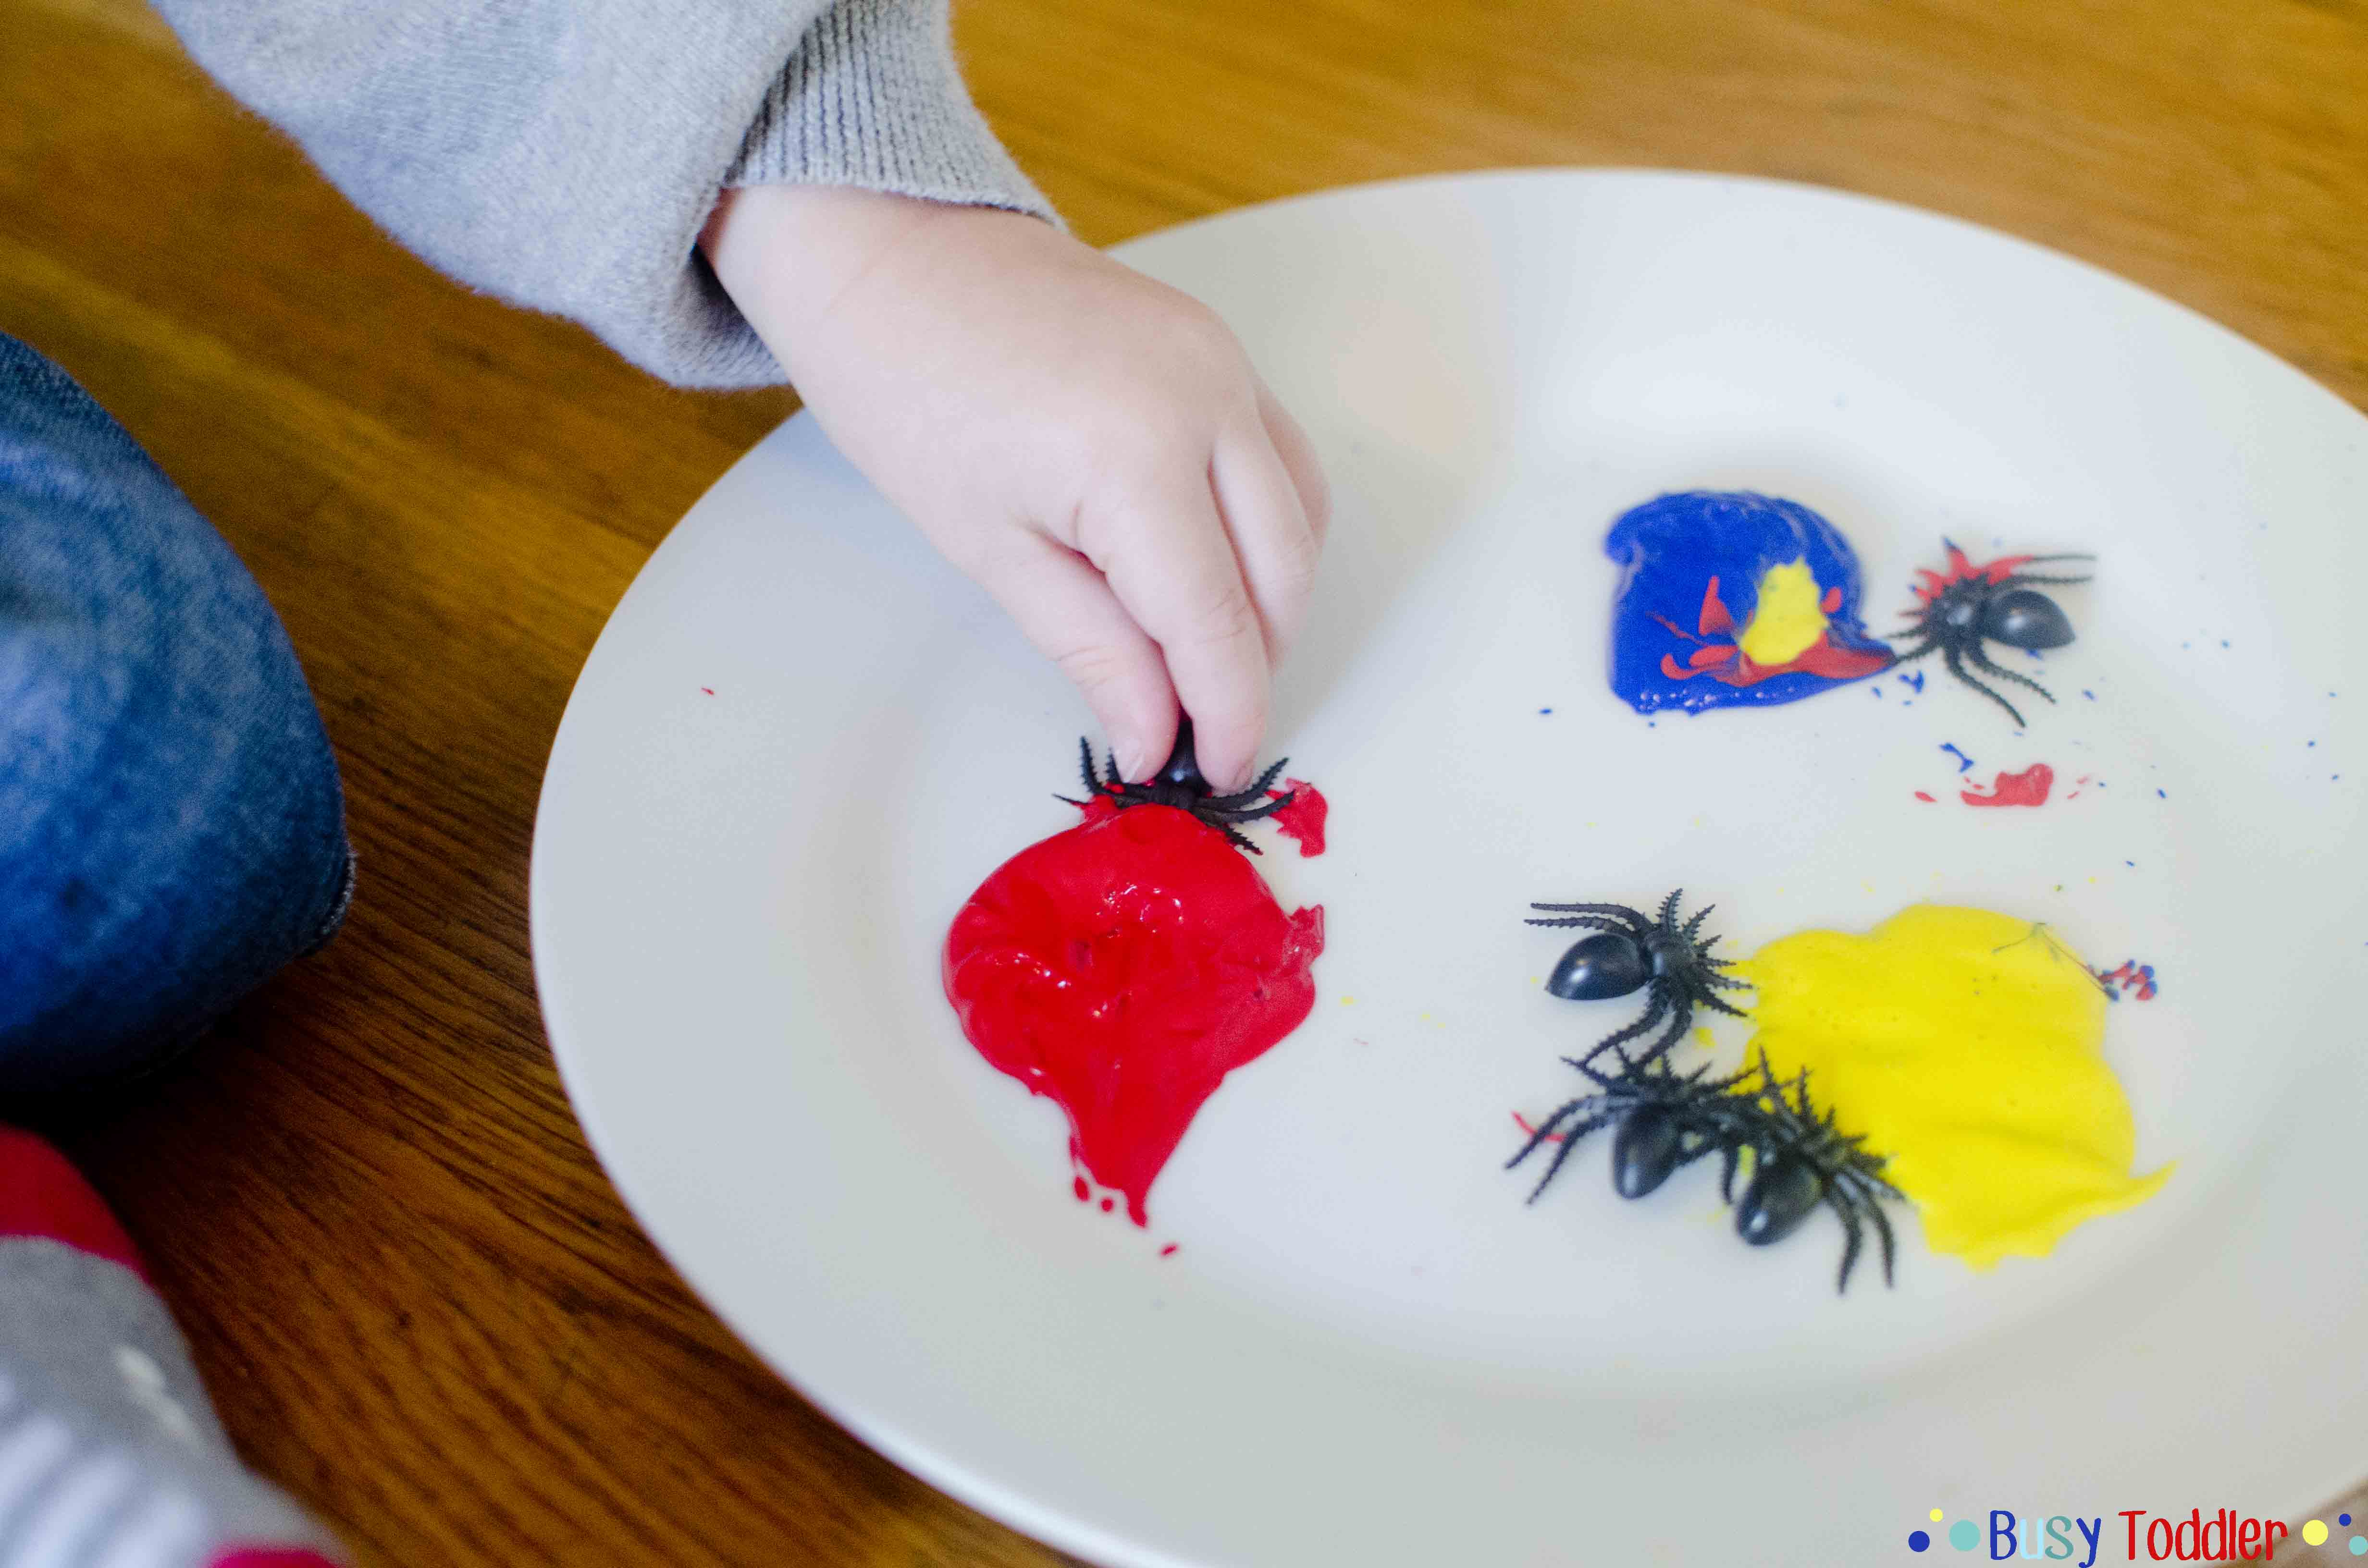 SPIDER PAINT: A silly way to play and paint